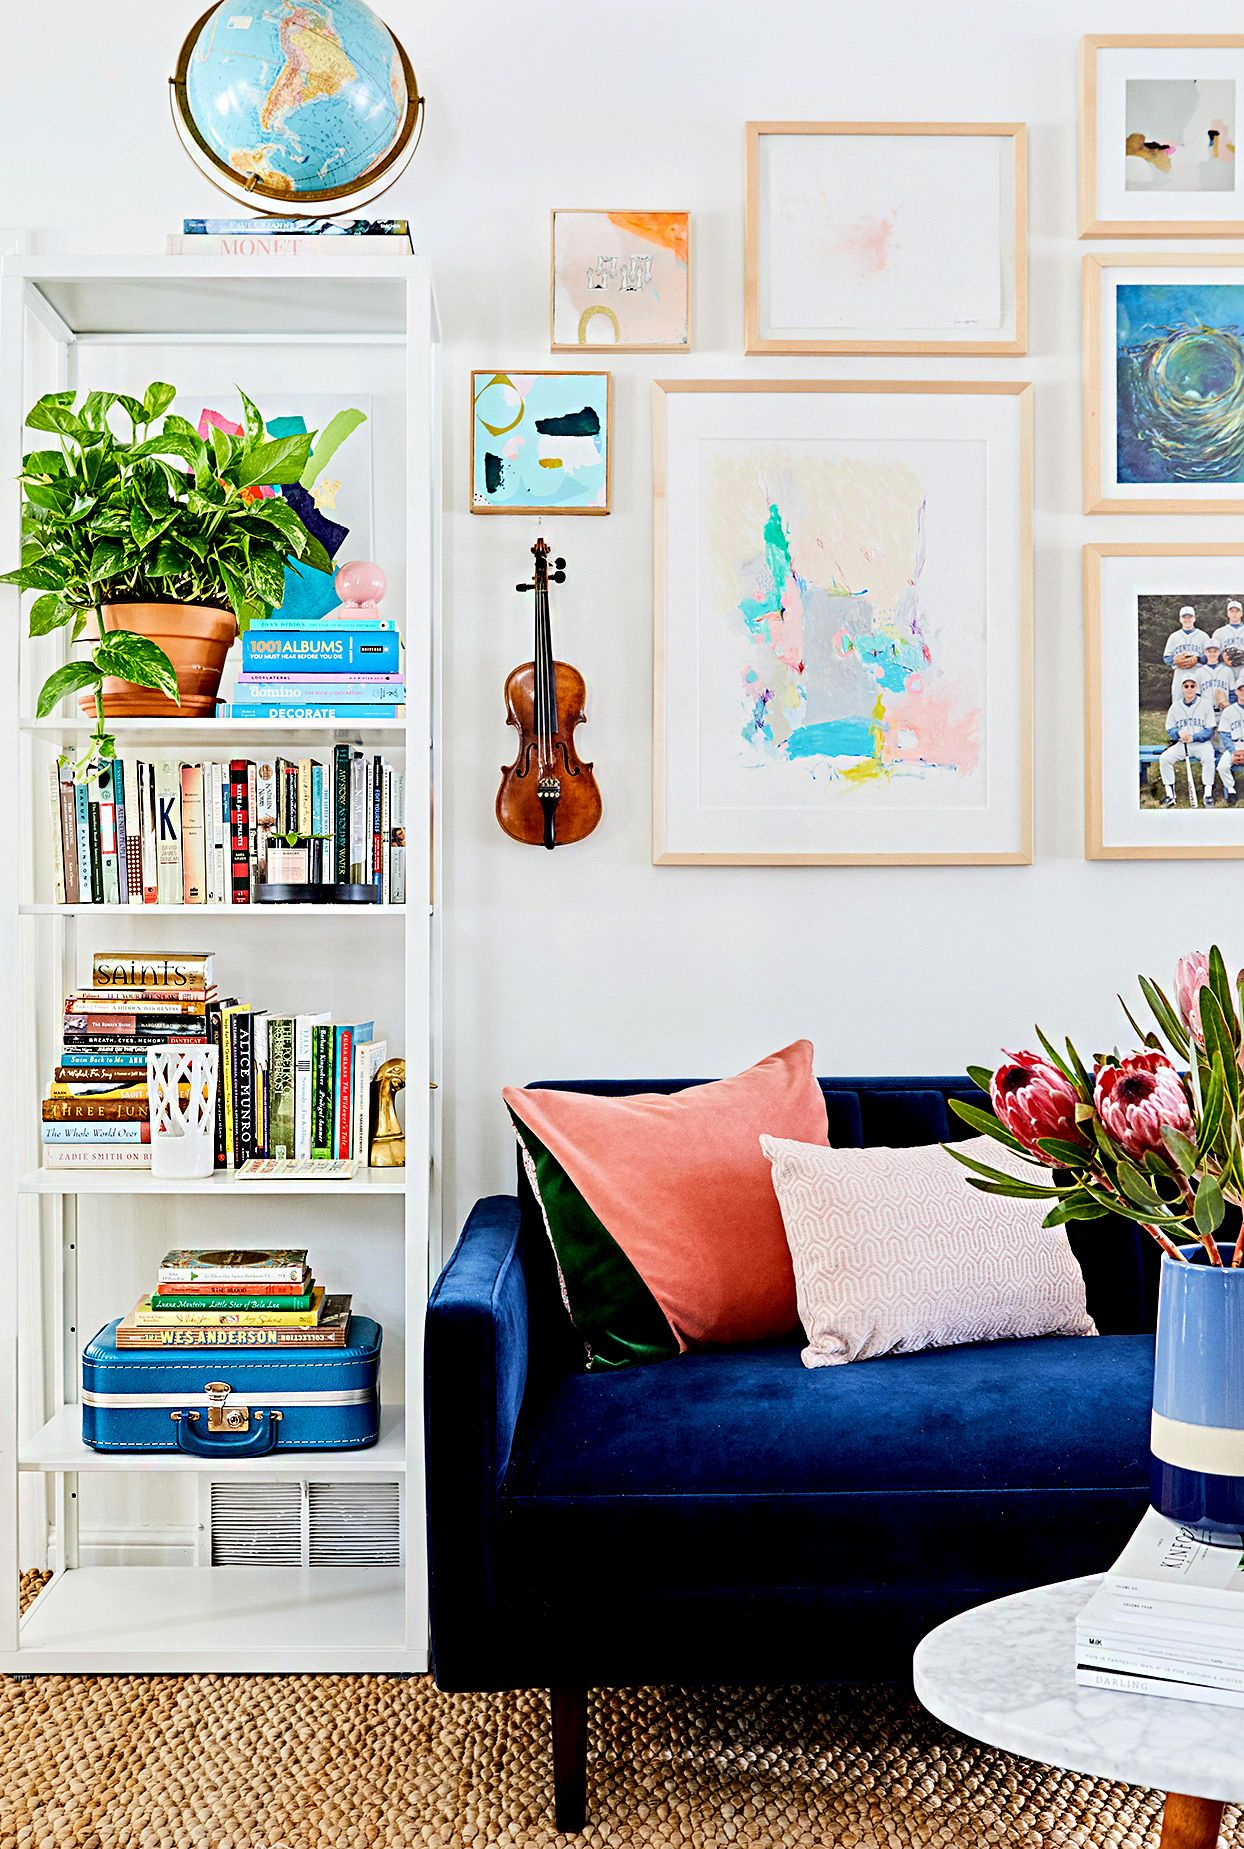 Living Room Update Ideas: 14 Unexpected Ways To Upgrade Your Living Room